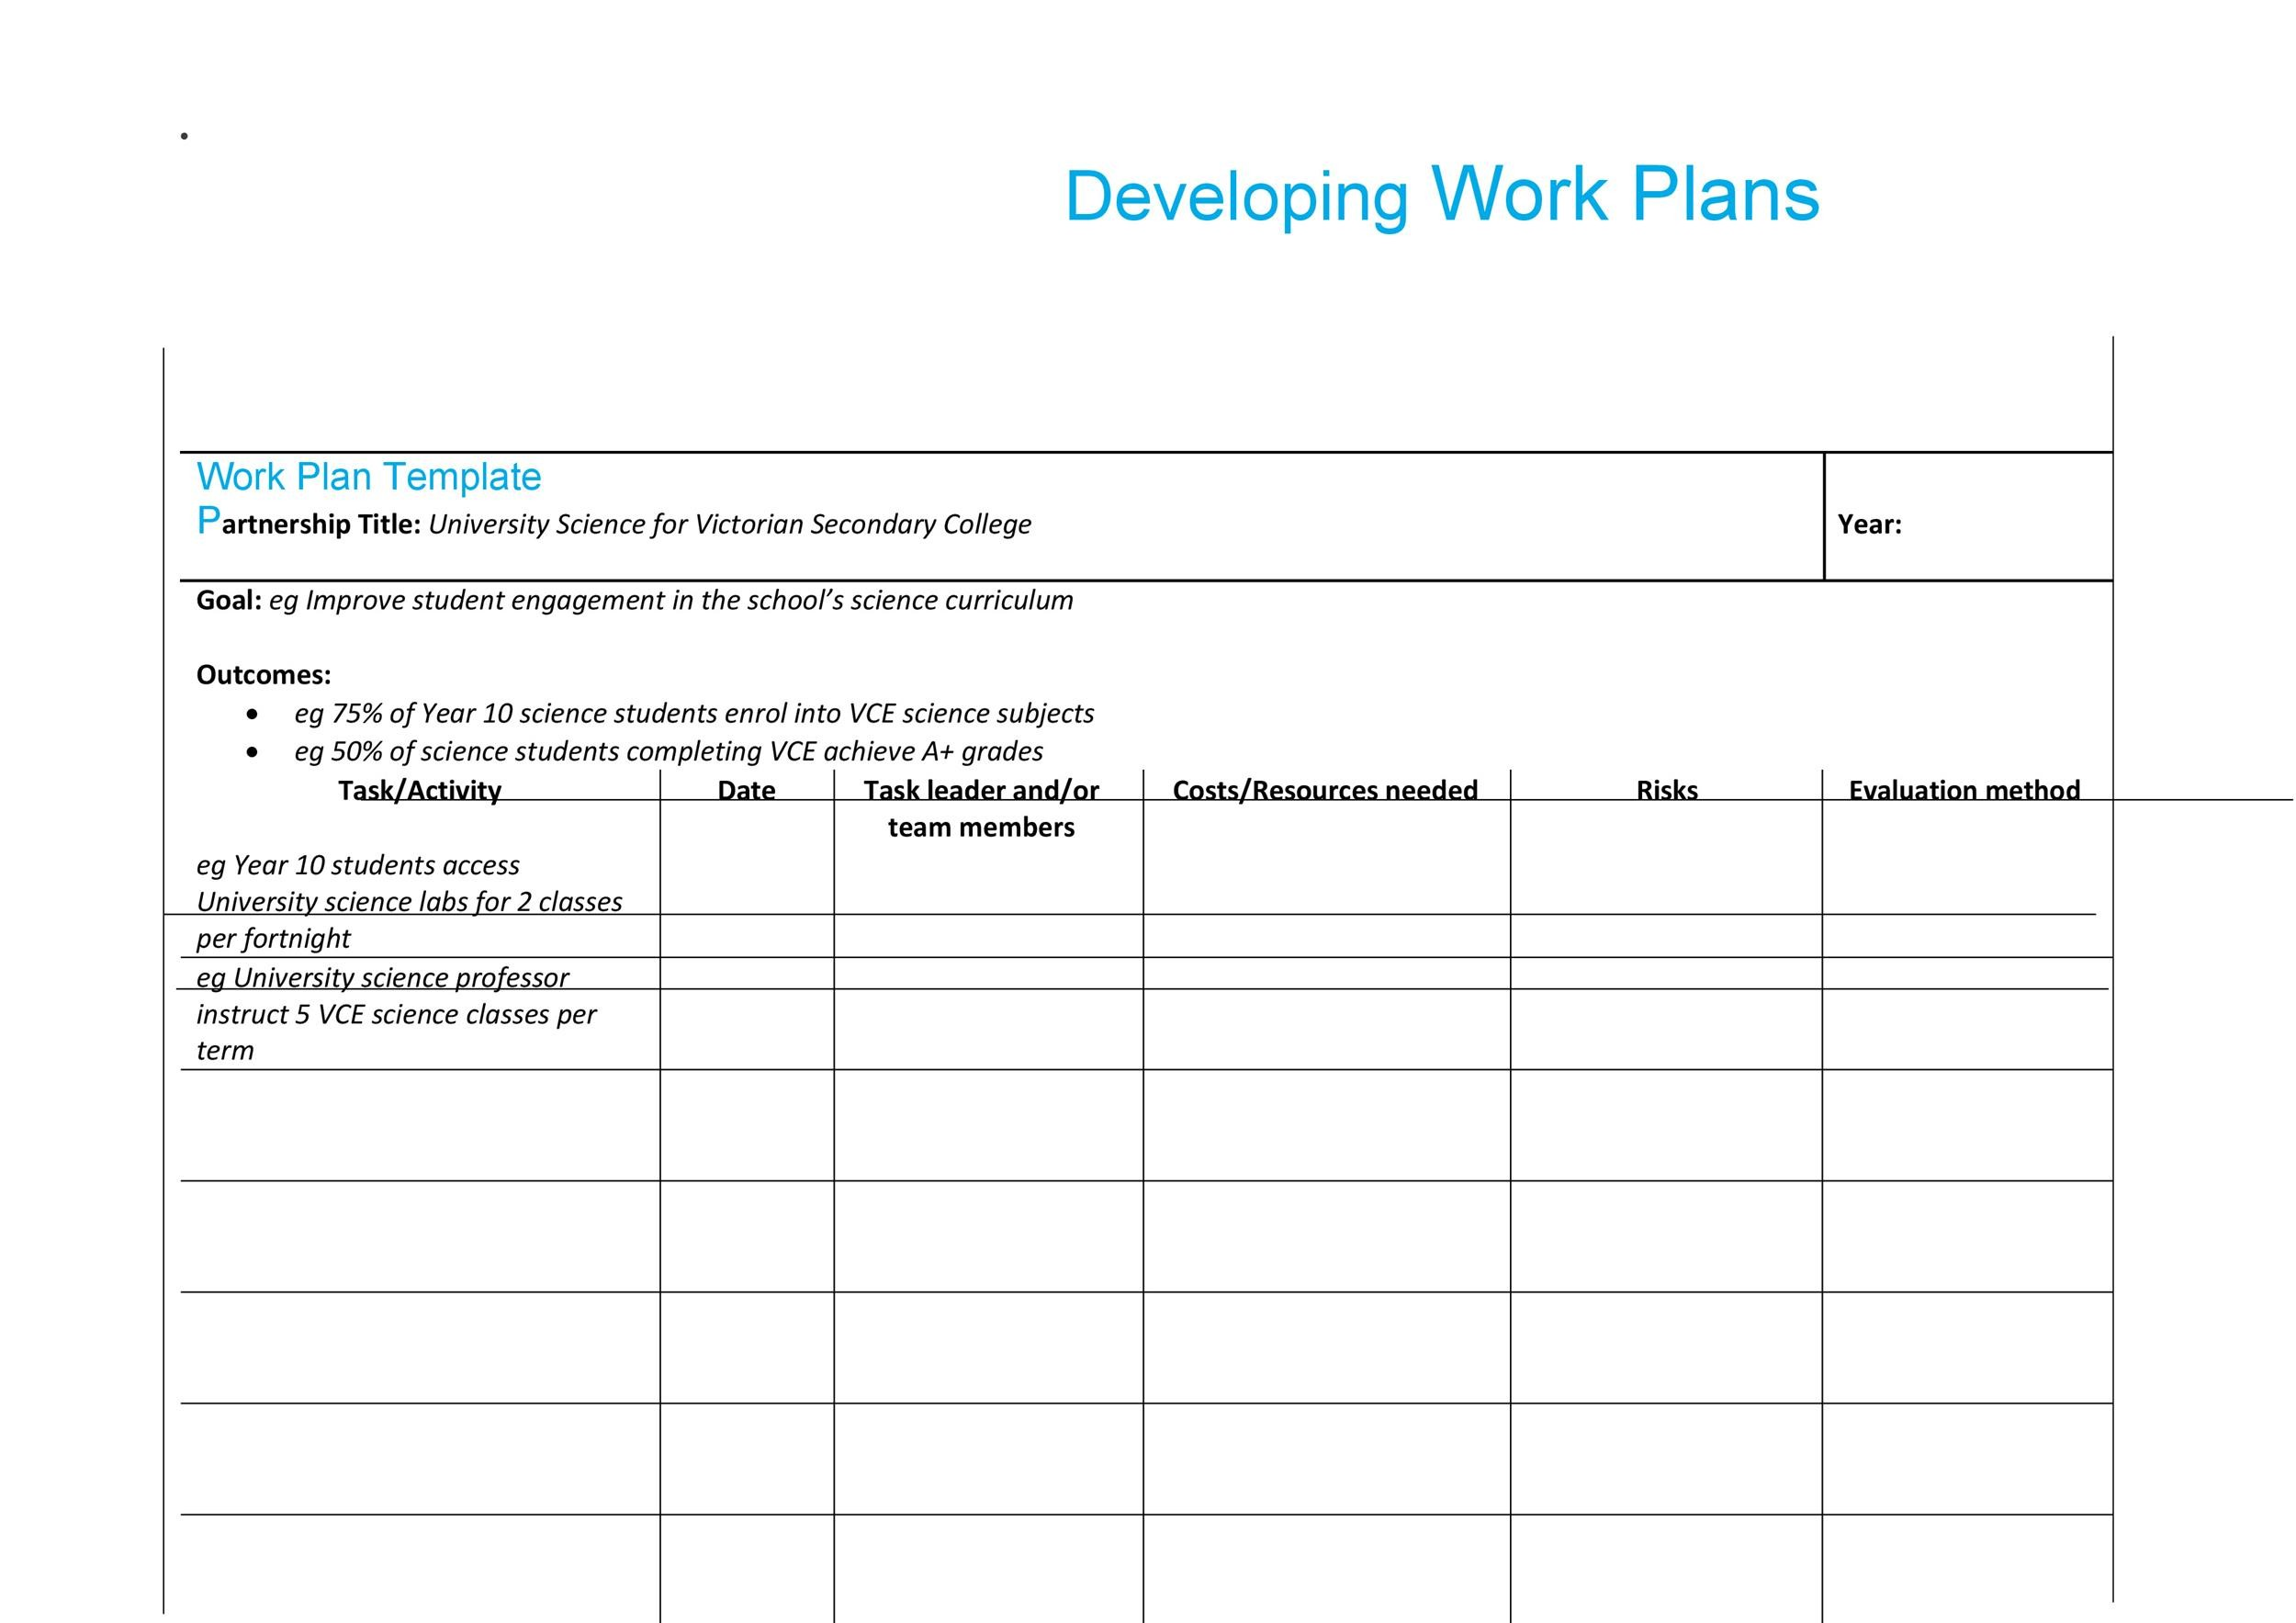 Work Plan Template Project Work Plan Templates Work Plan Great